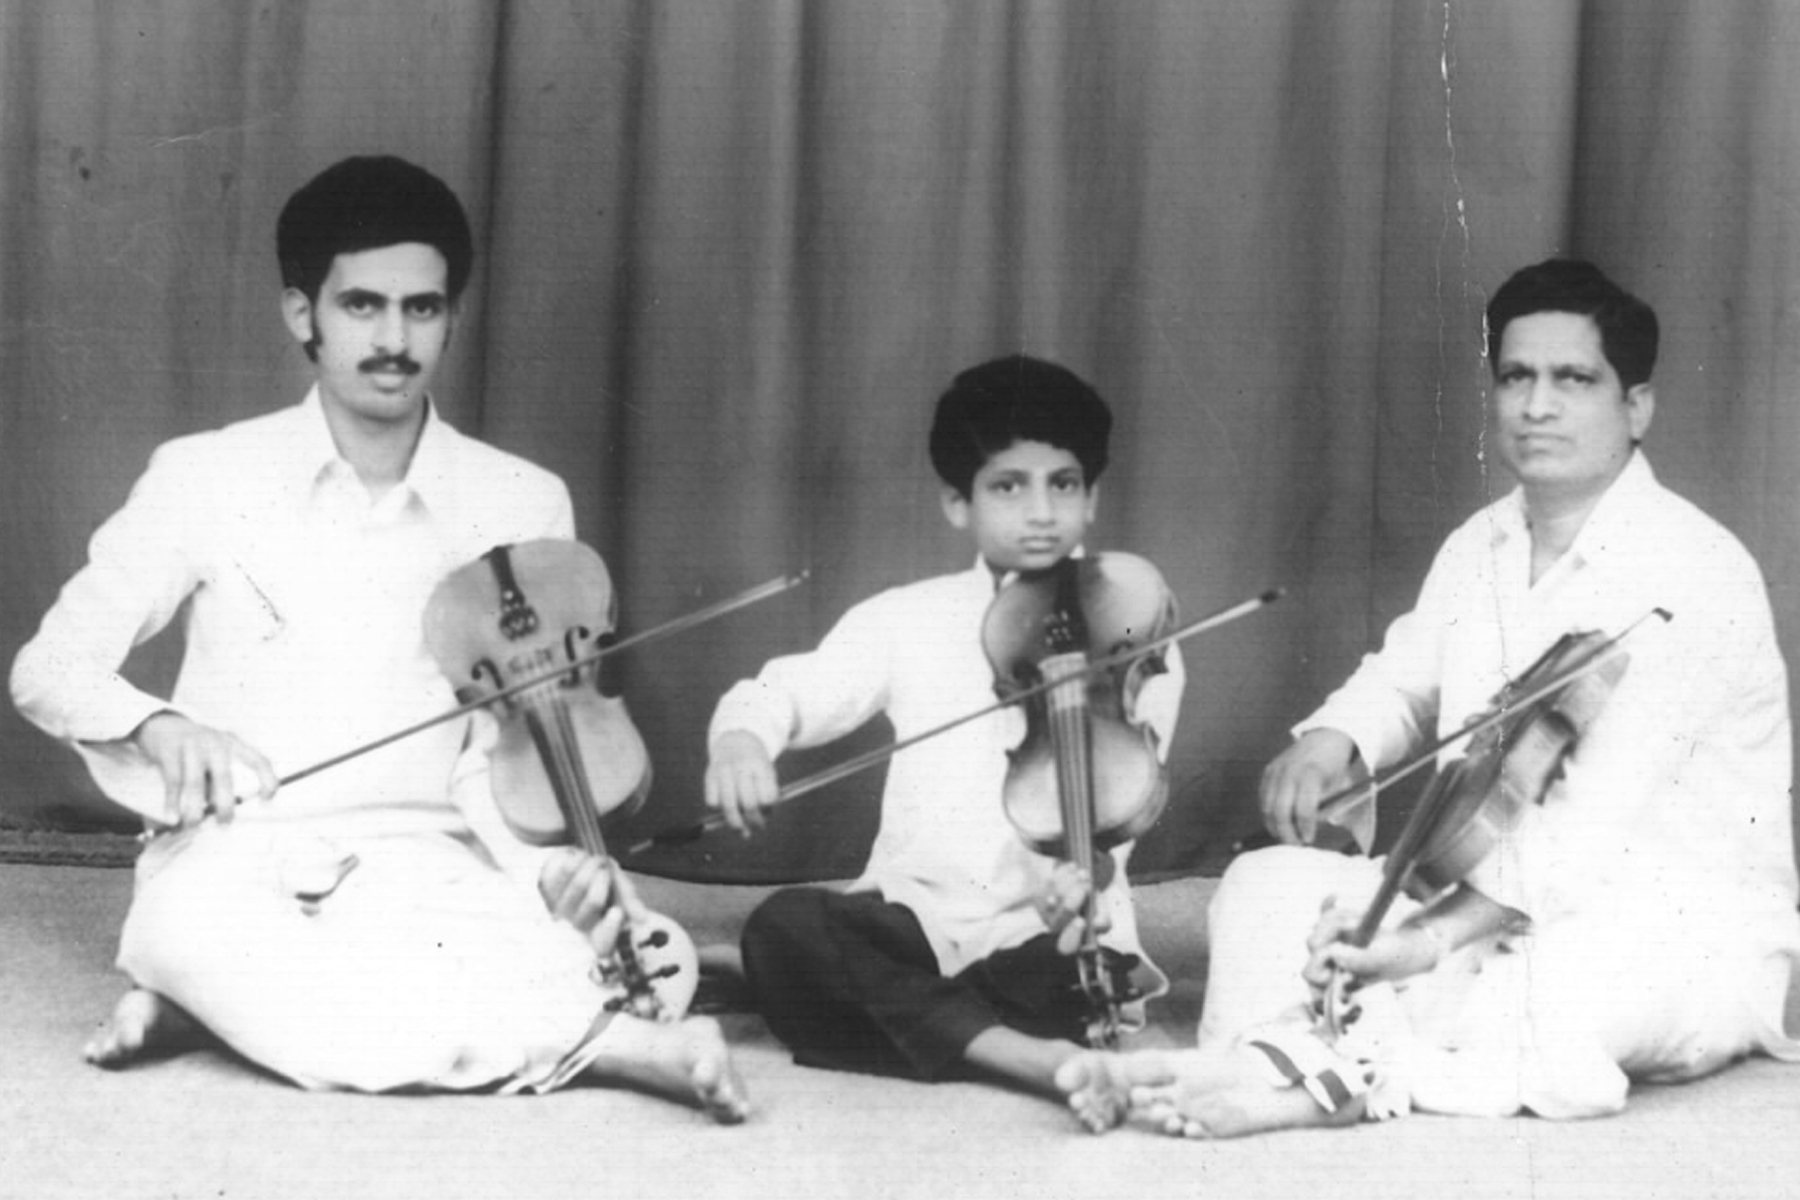 Carnatic Violin - The violin is one of the most versatile instruments in the world and was introduced to India around the 18th century by European colonialists. Baluswami Dikshitar is credited as the first musician to experiment adapting Carnatic Classical techniques and repertoire on the violin. The violin's uncanny ability to emulate the human voice naturally lent itself to becoming the instrument of choice for accompaniment in all Carnatic Classical music concerts. It subsequently developed as a popular solo instrument in Carnatic music. In the hands of great Carnatic musicians, the scope of violin's capability has grown considerably.